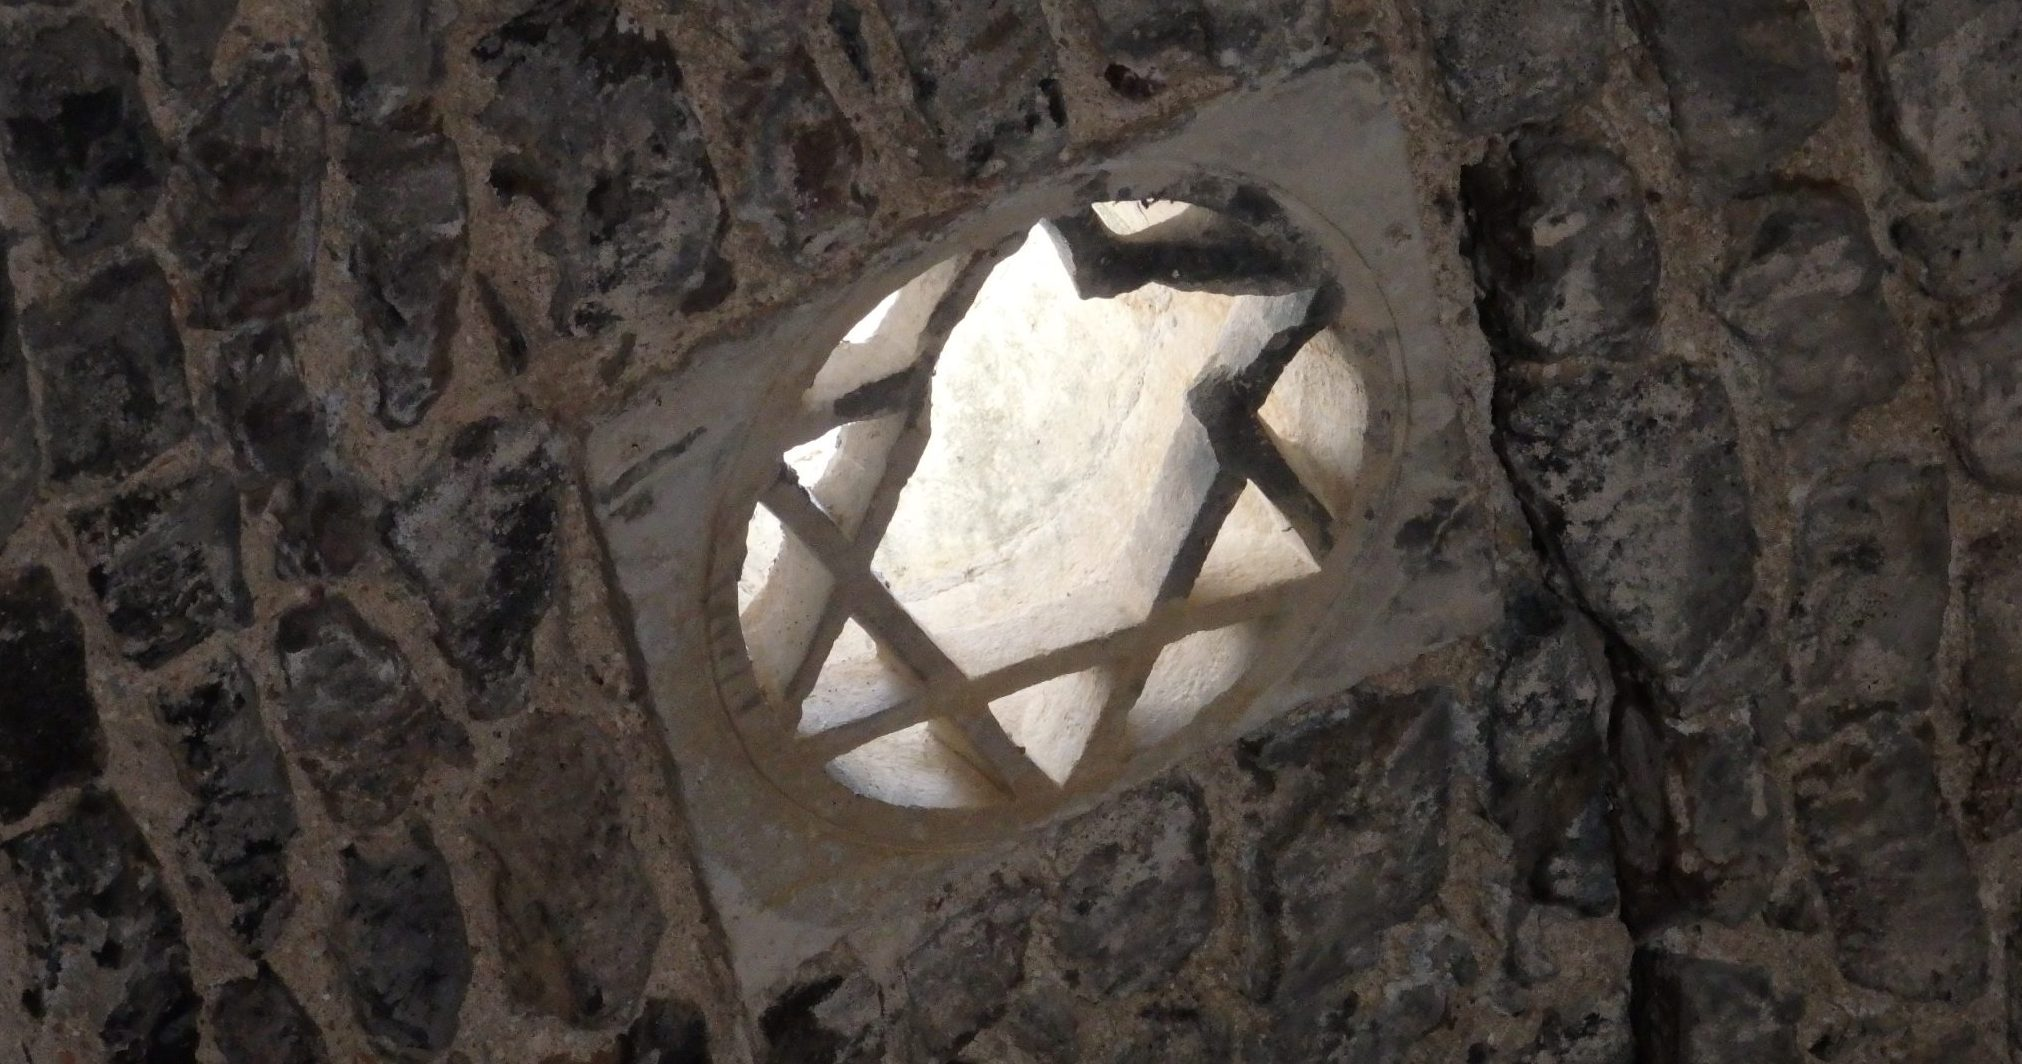 The light in the Arab baths in Girona filters in through small high windows, including this star of David.